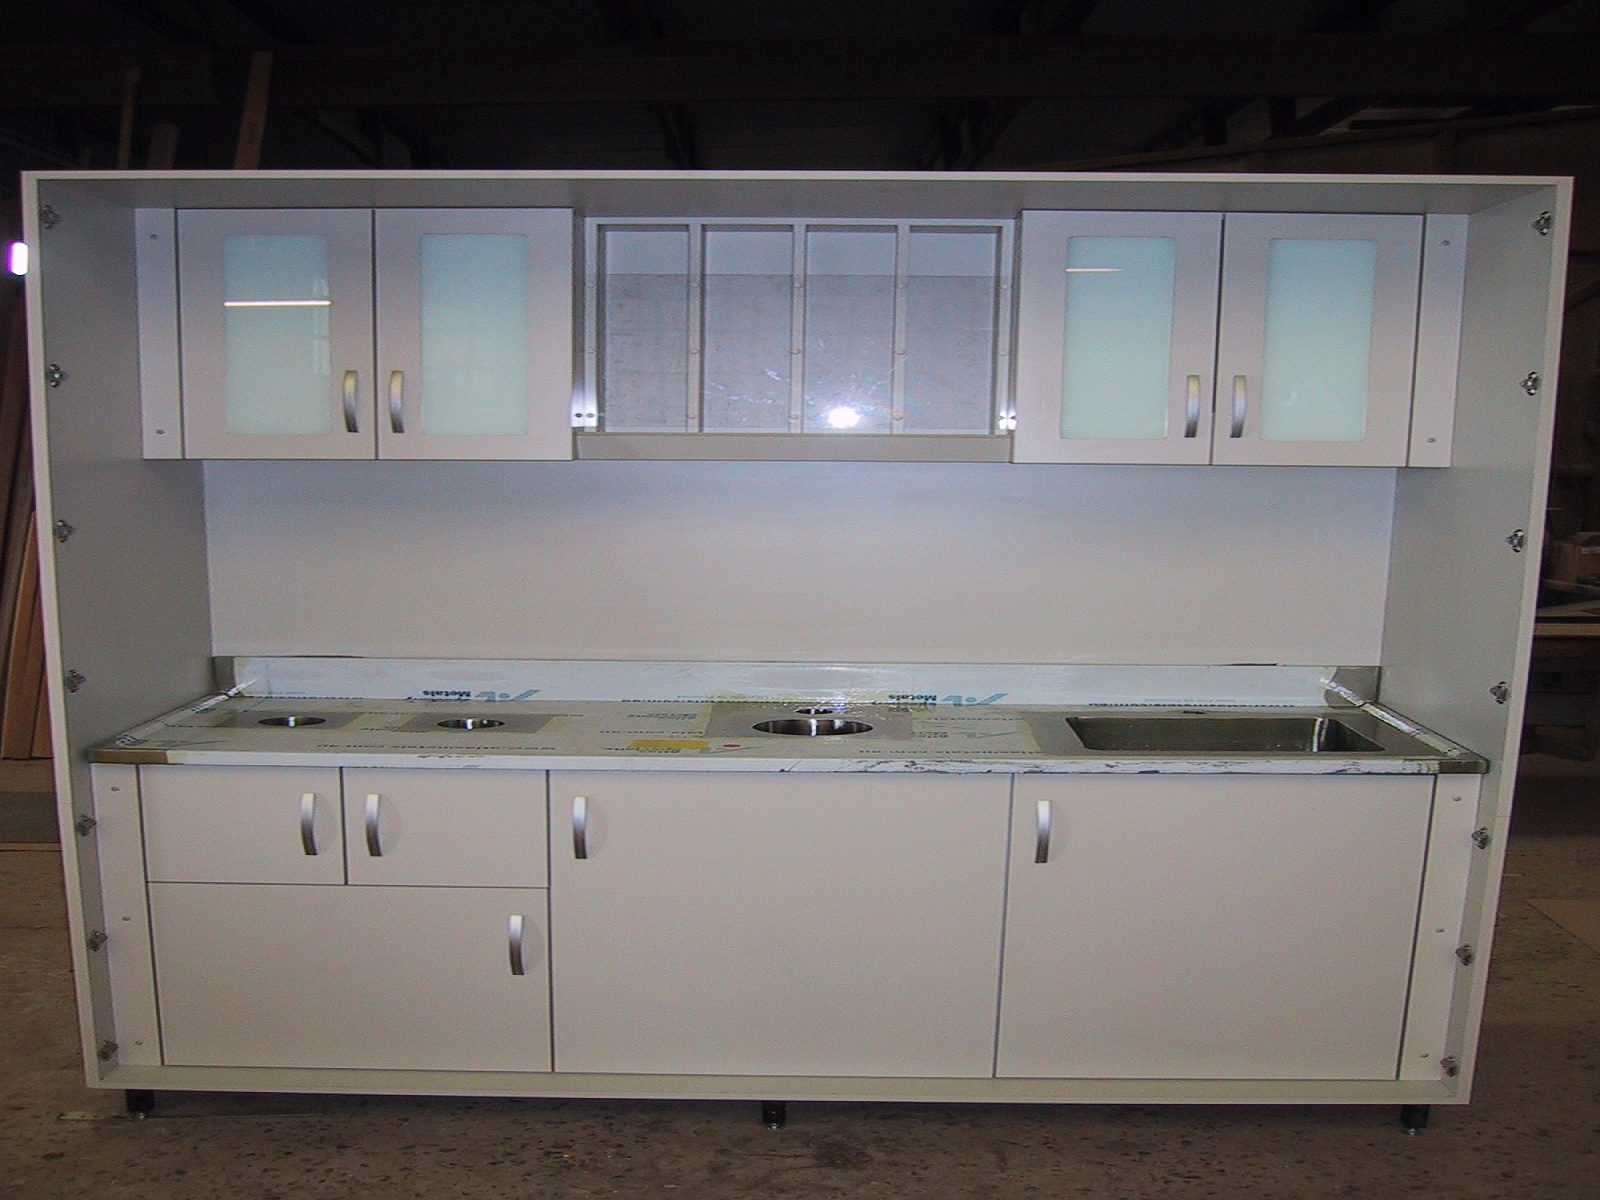 Portable lead lined hotlab with shielded cabinets